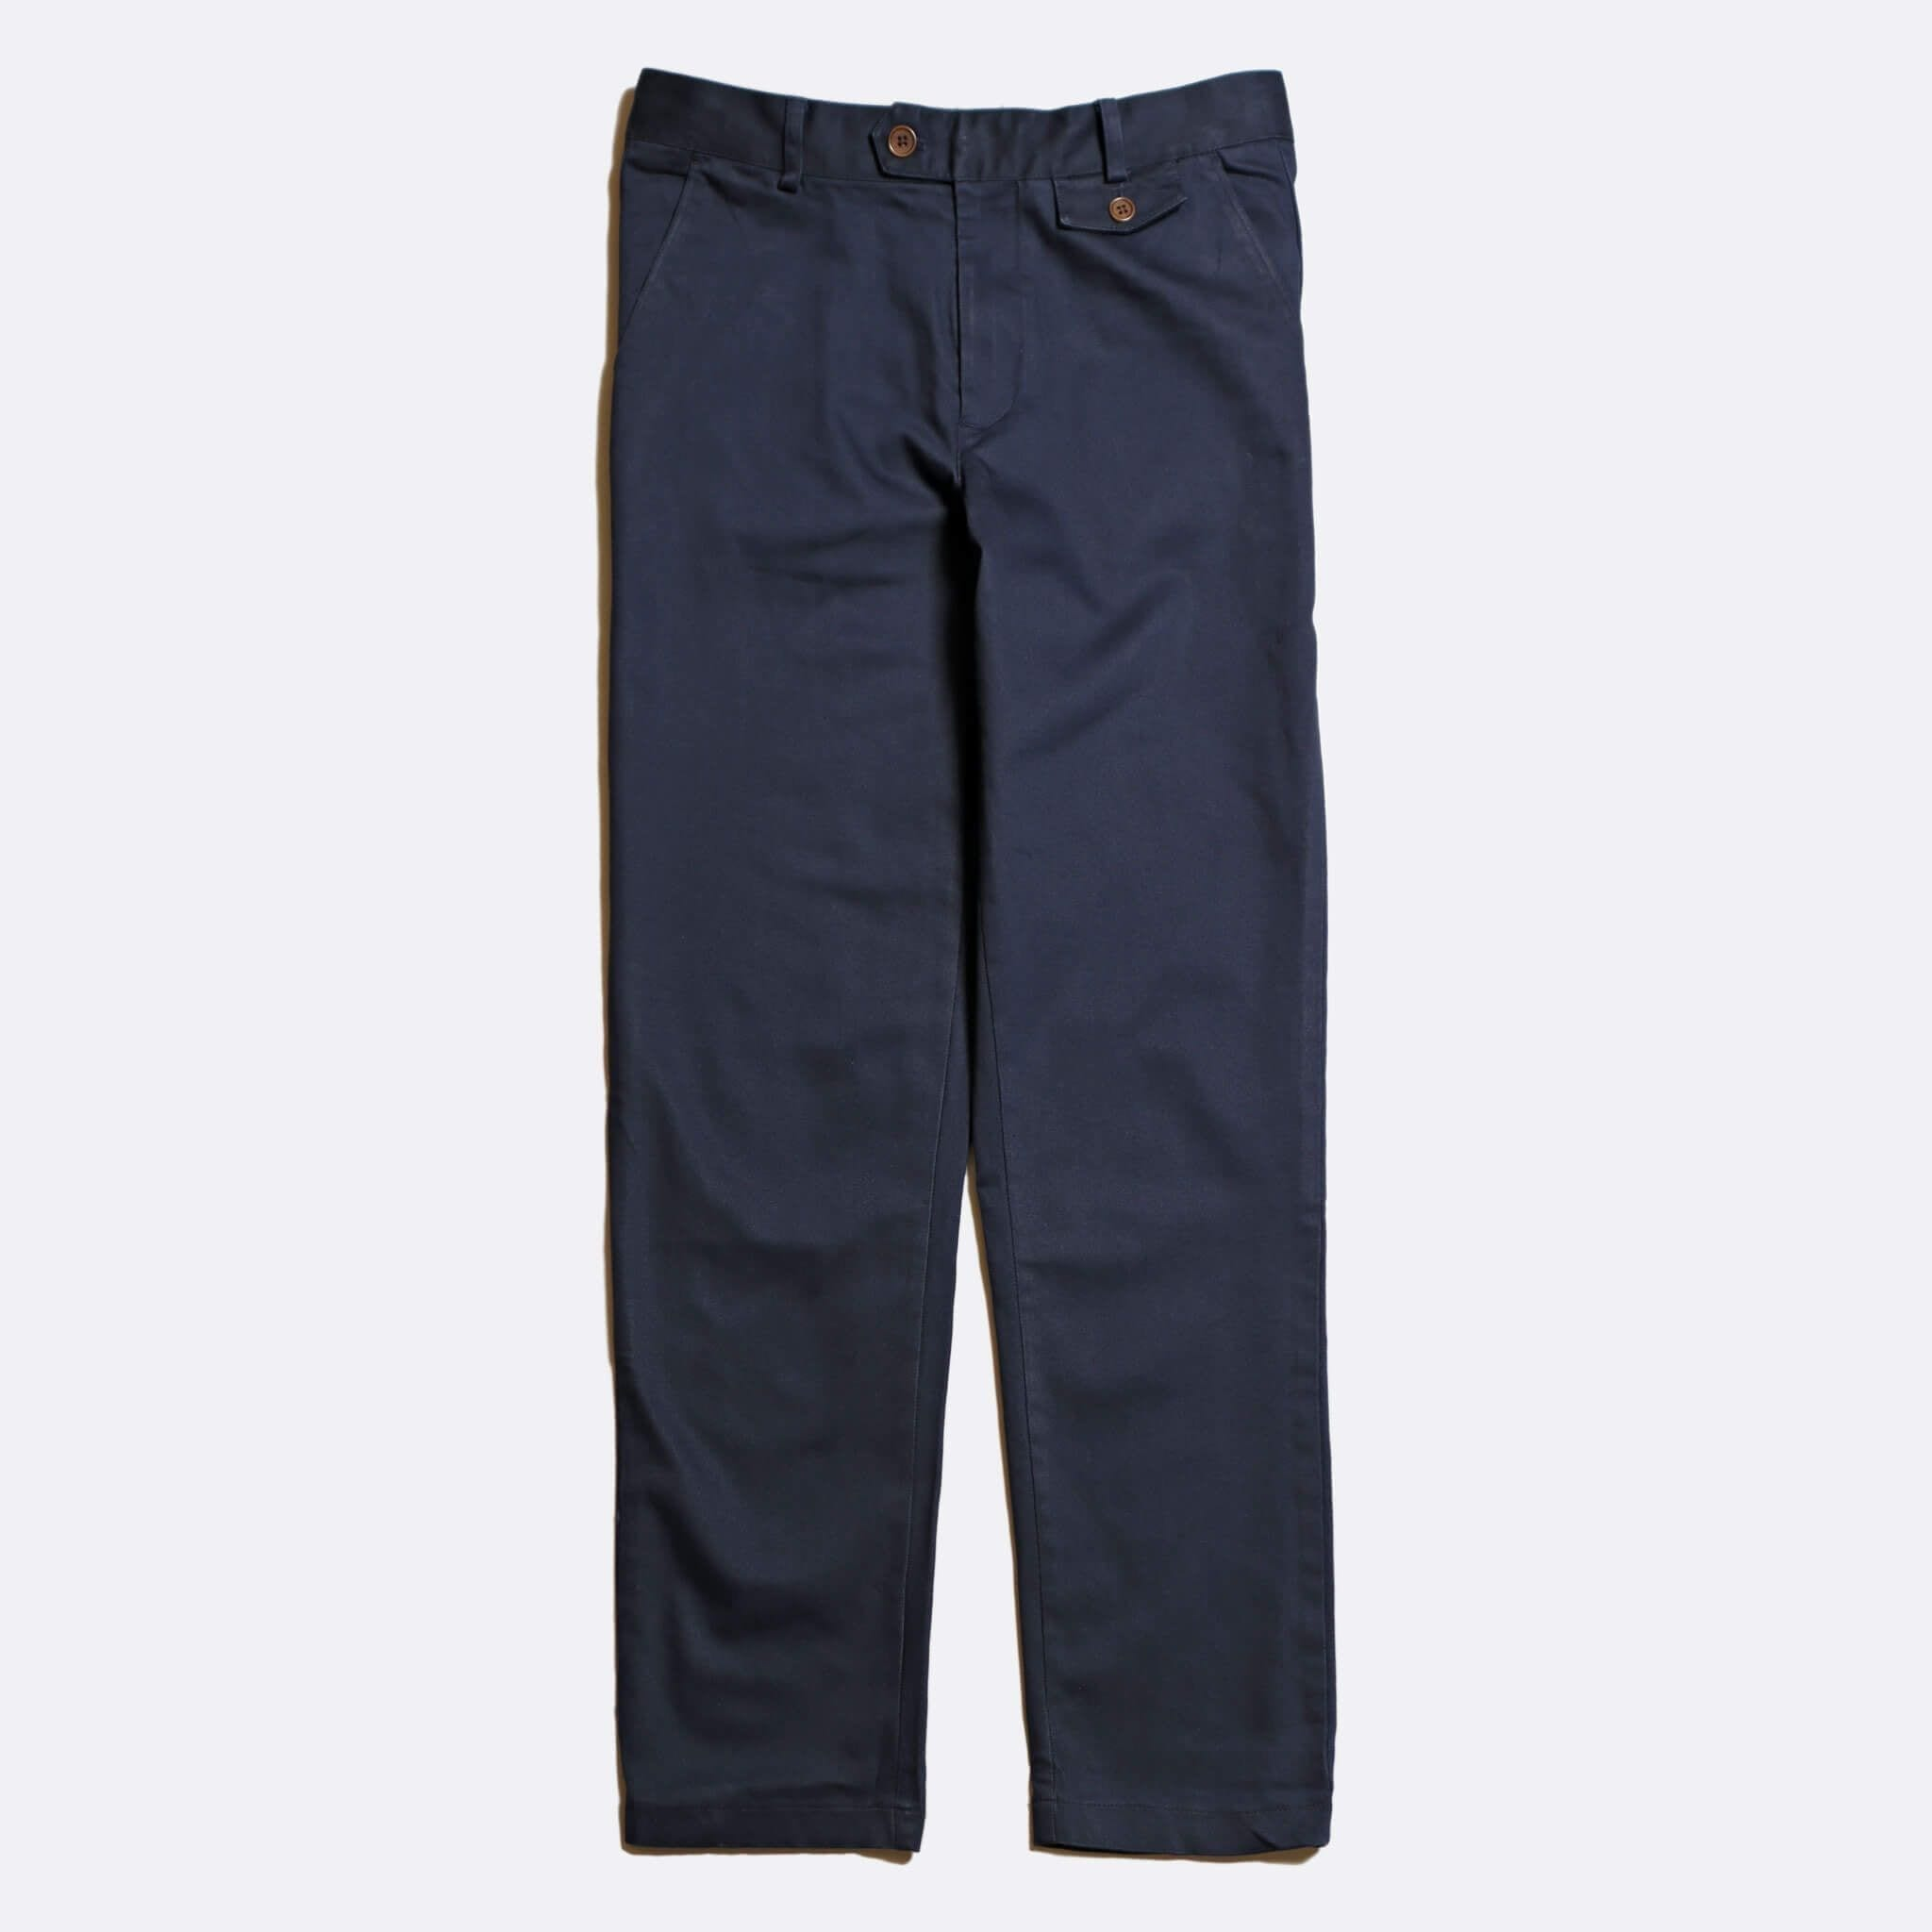 Far Afield Tricker Trousers a Ensign Blue Organic Cotton Twill Classic Tailored Smart Casual Trousers